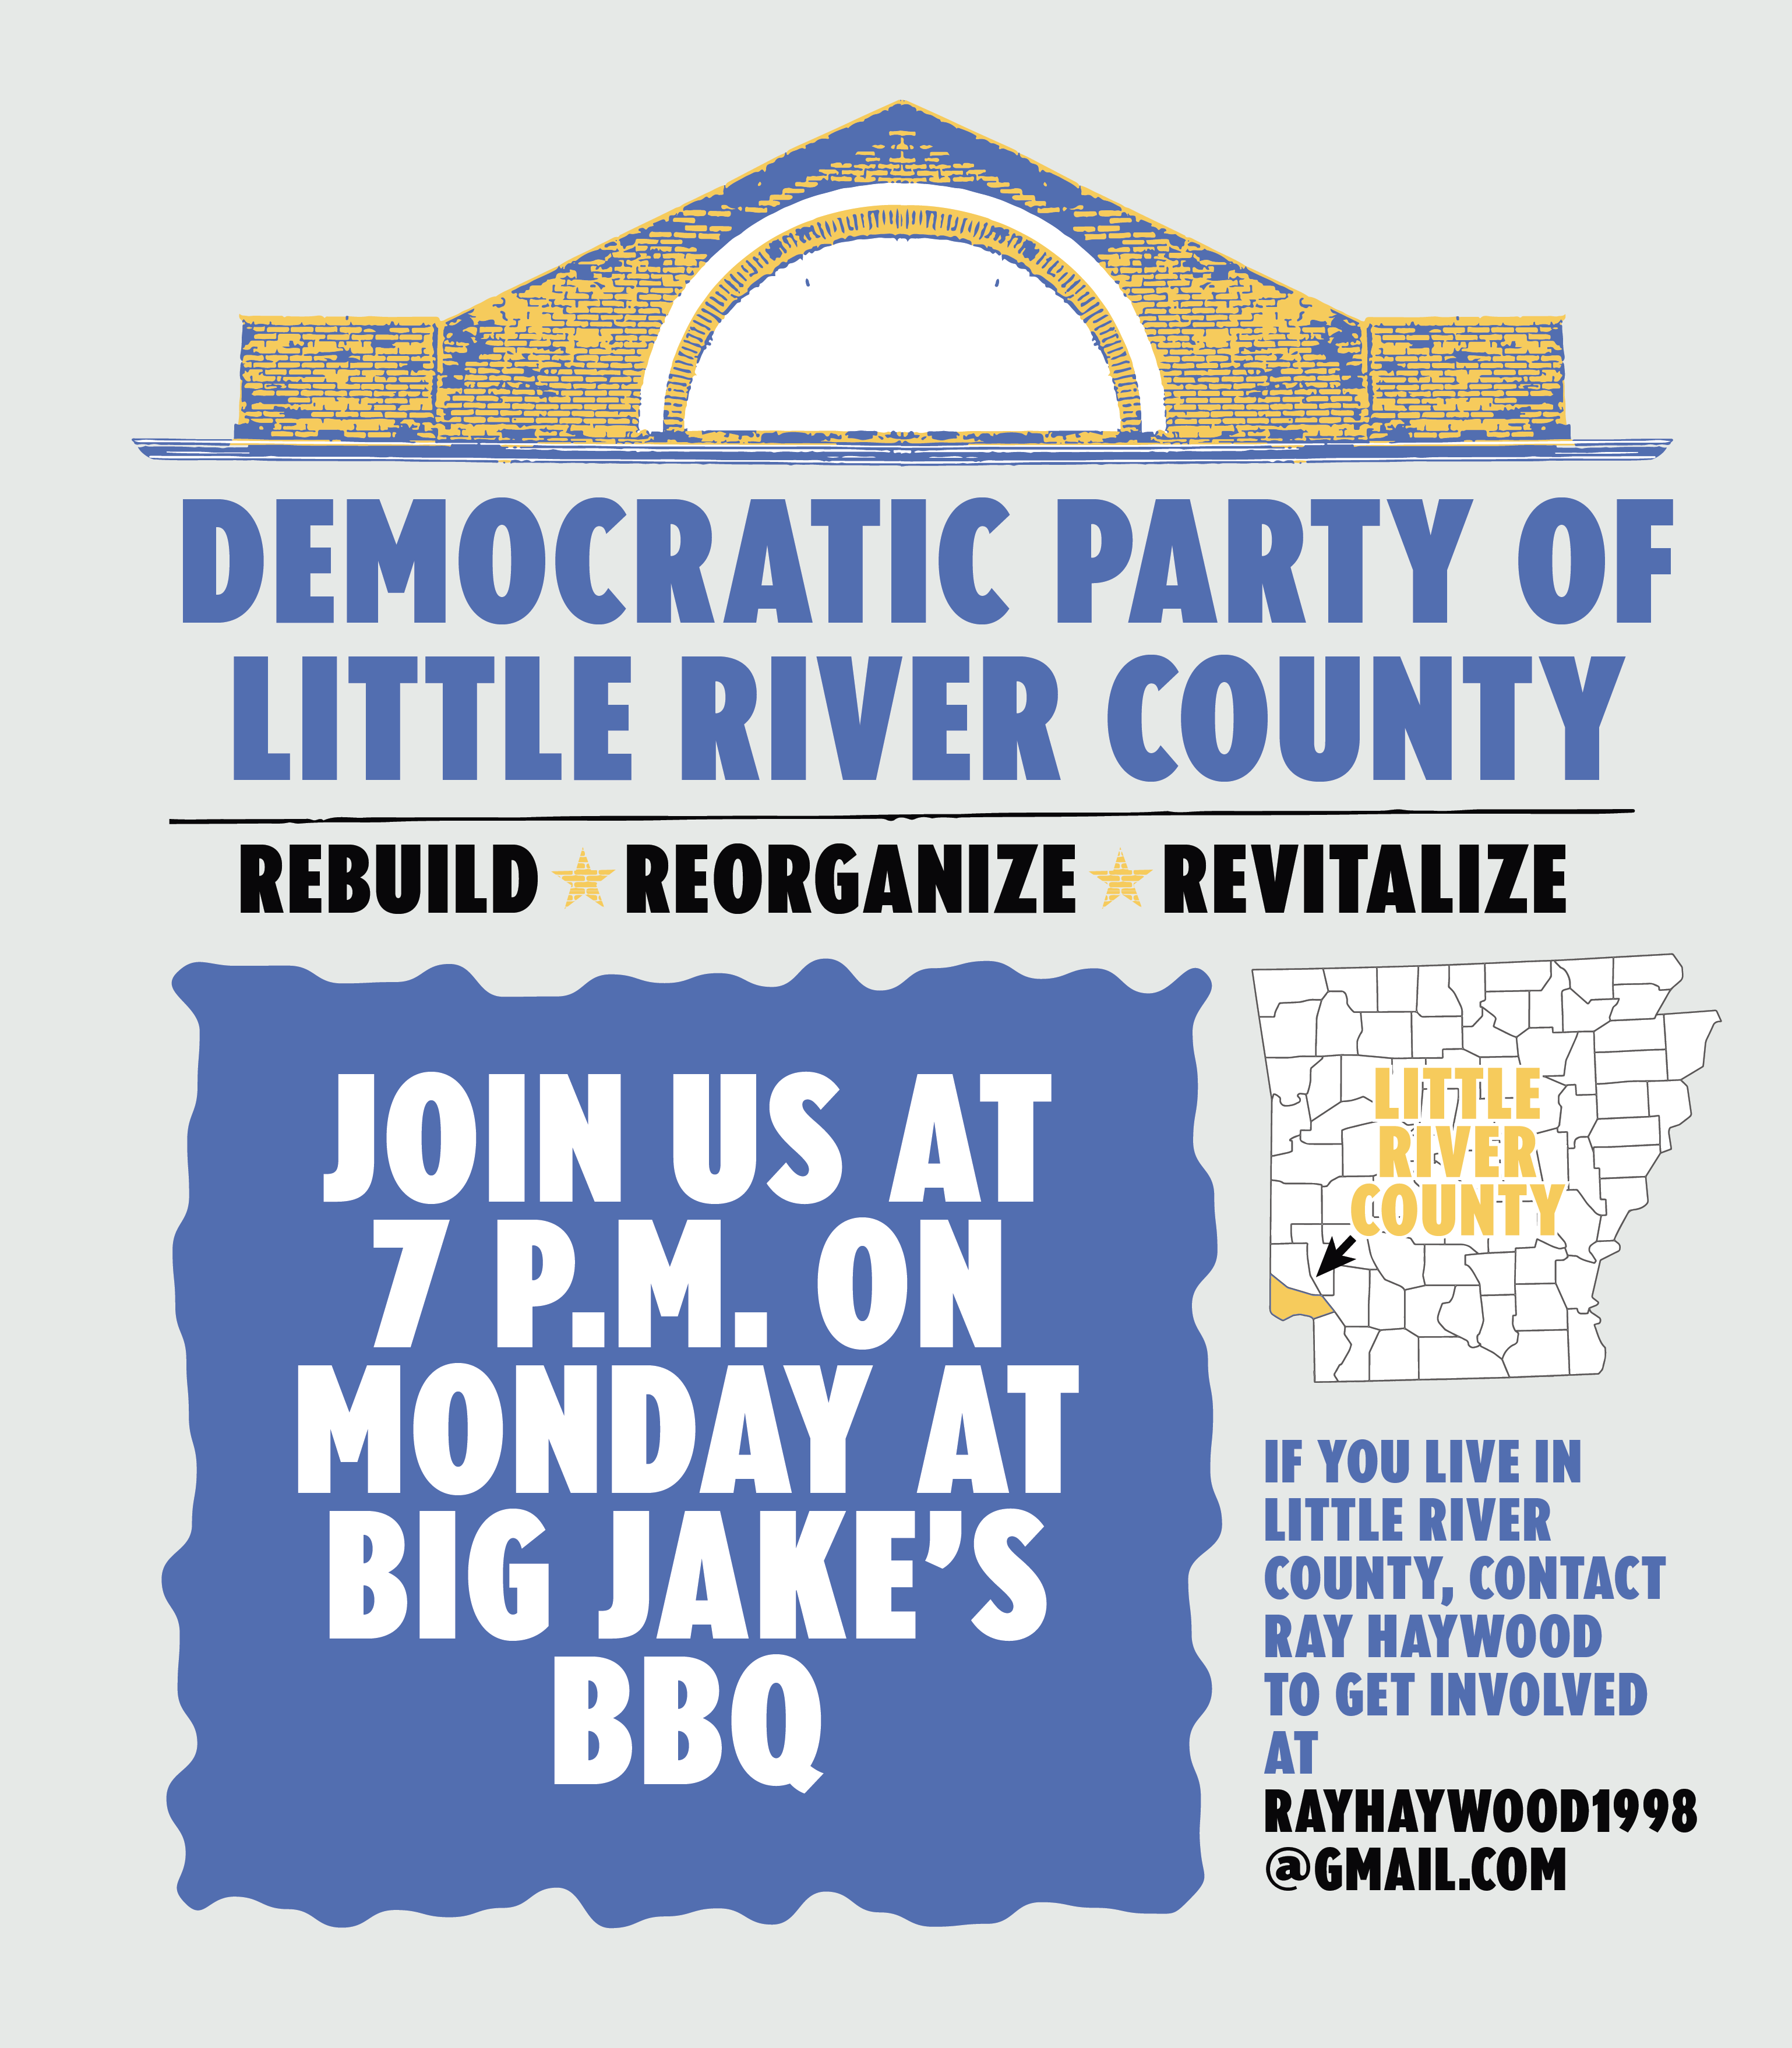 The Democratic Party of Little River County is back.